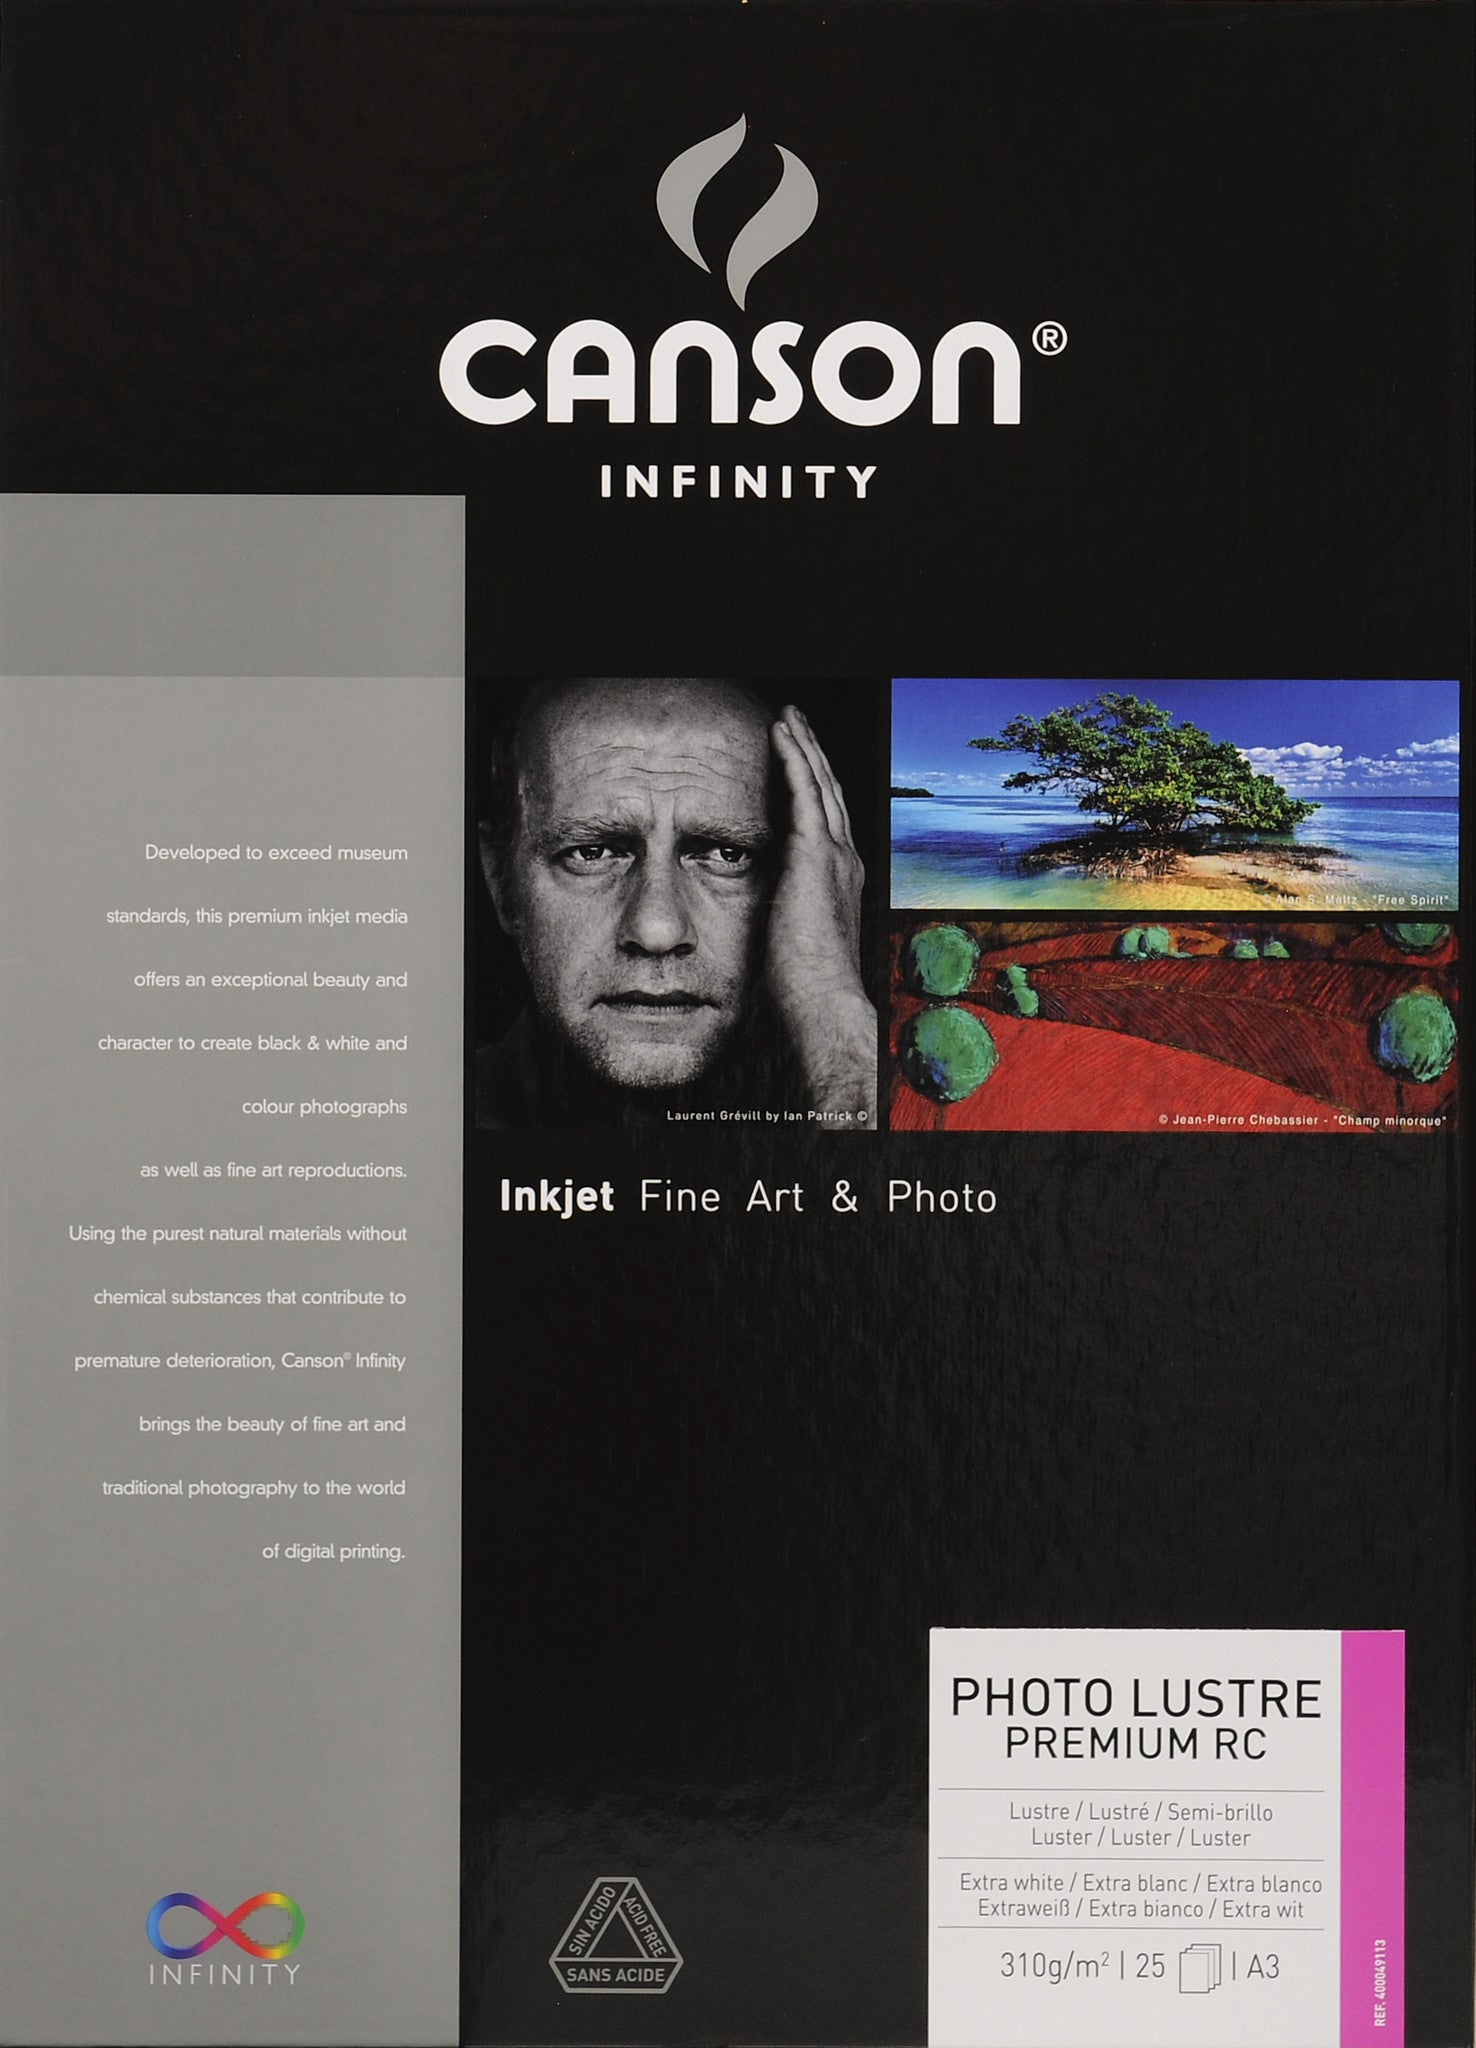 Canson Infinity Photo Luster Premium RC - 310gsm - A3 (25 sheets)